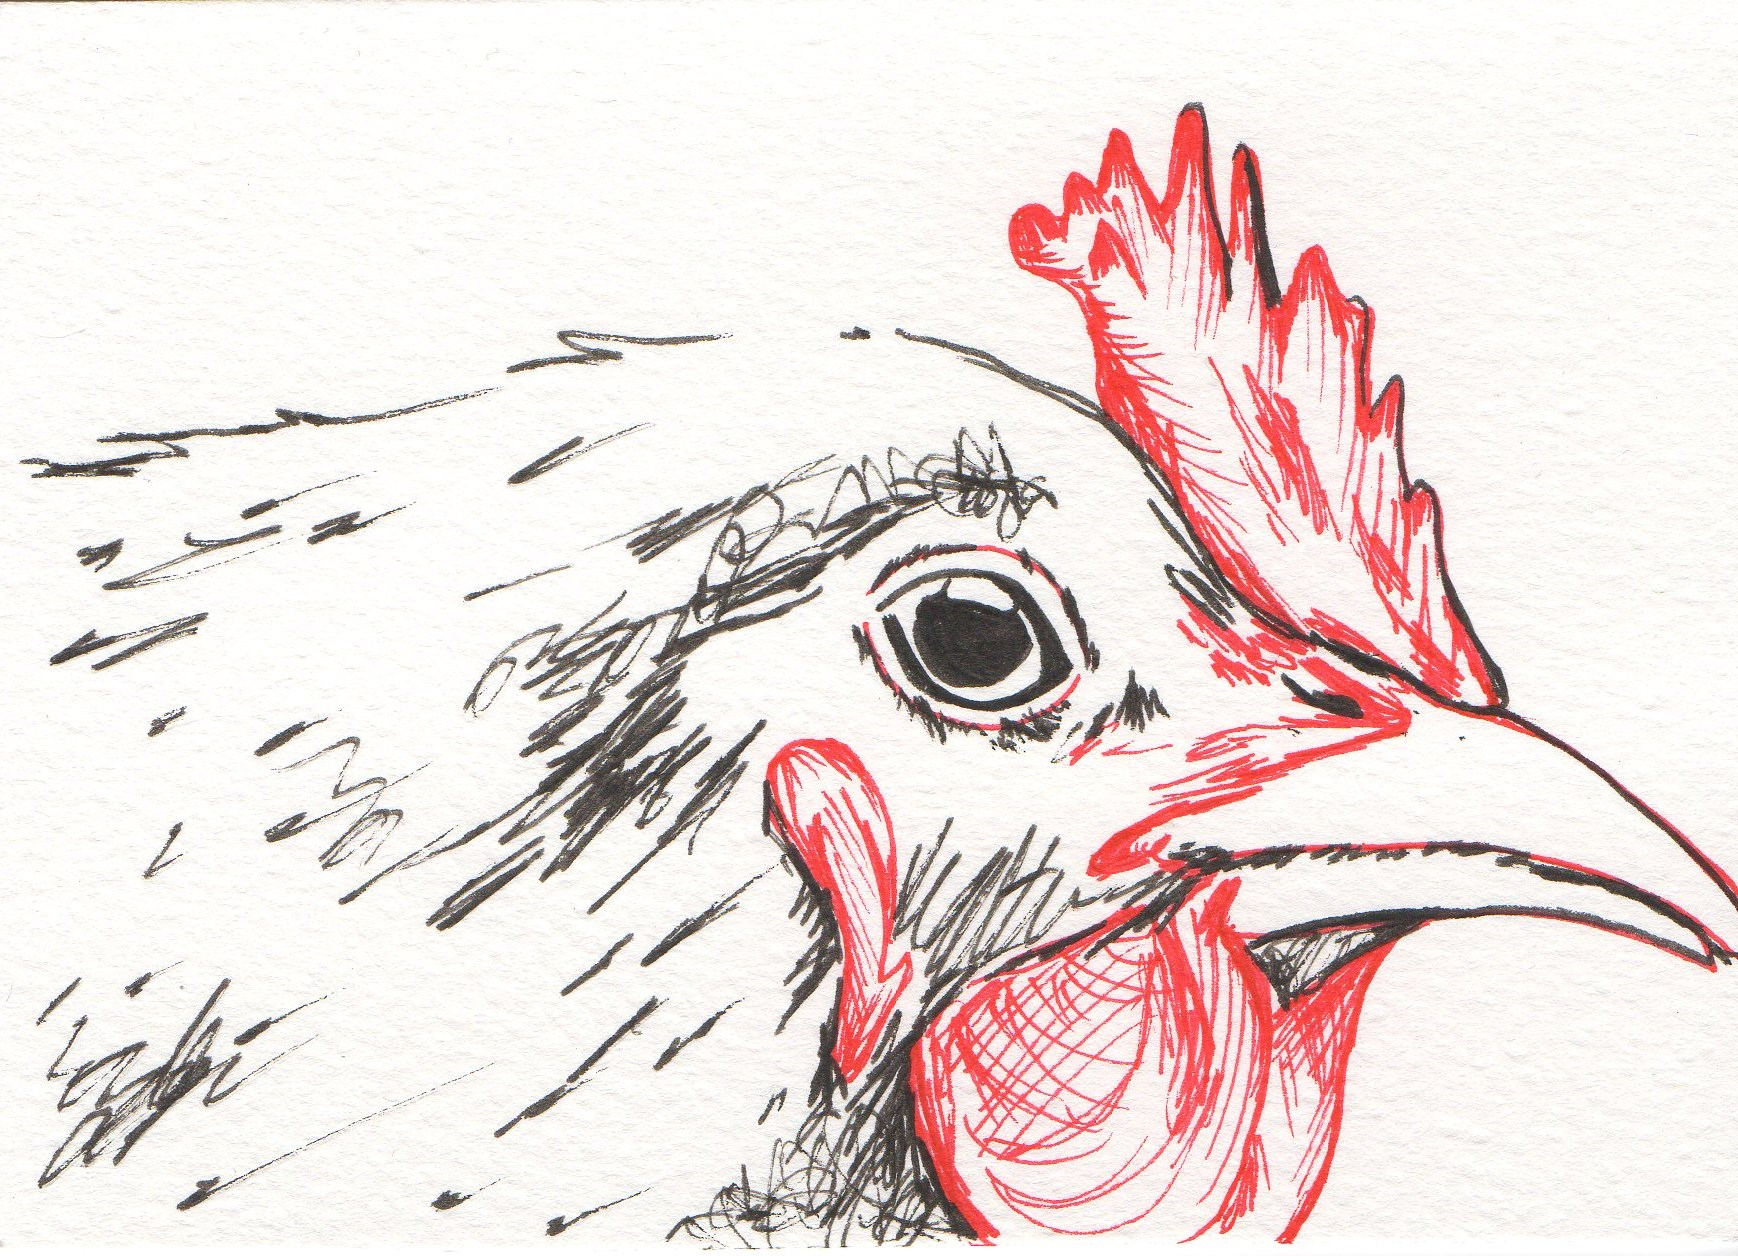 1738x1256 Original Art, Chicken Drawing Signed By The Artist Dr. Nice Dr. Nice